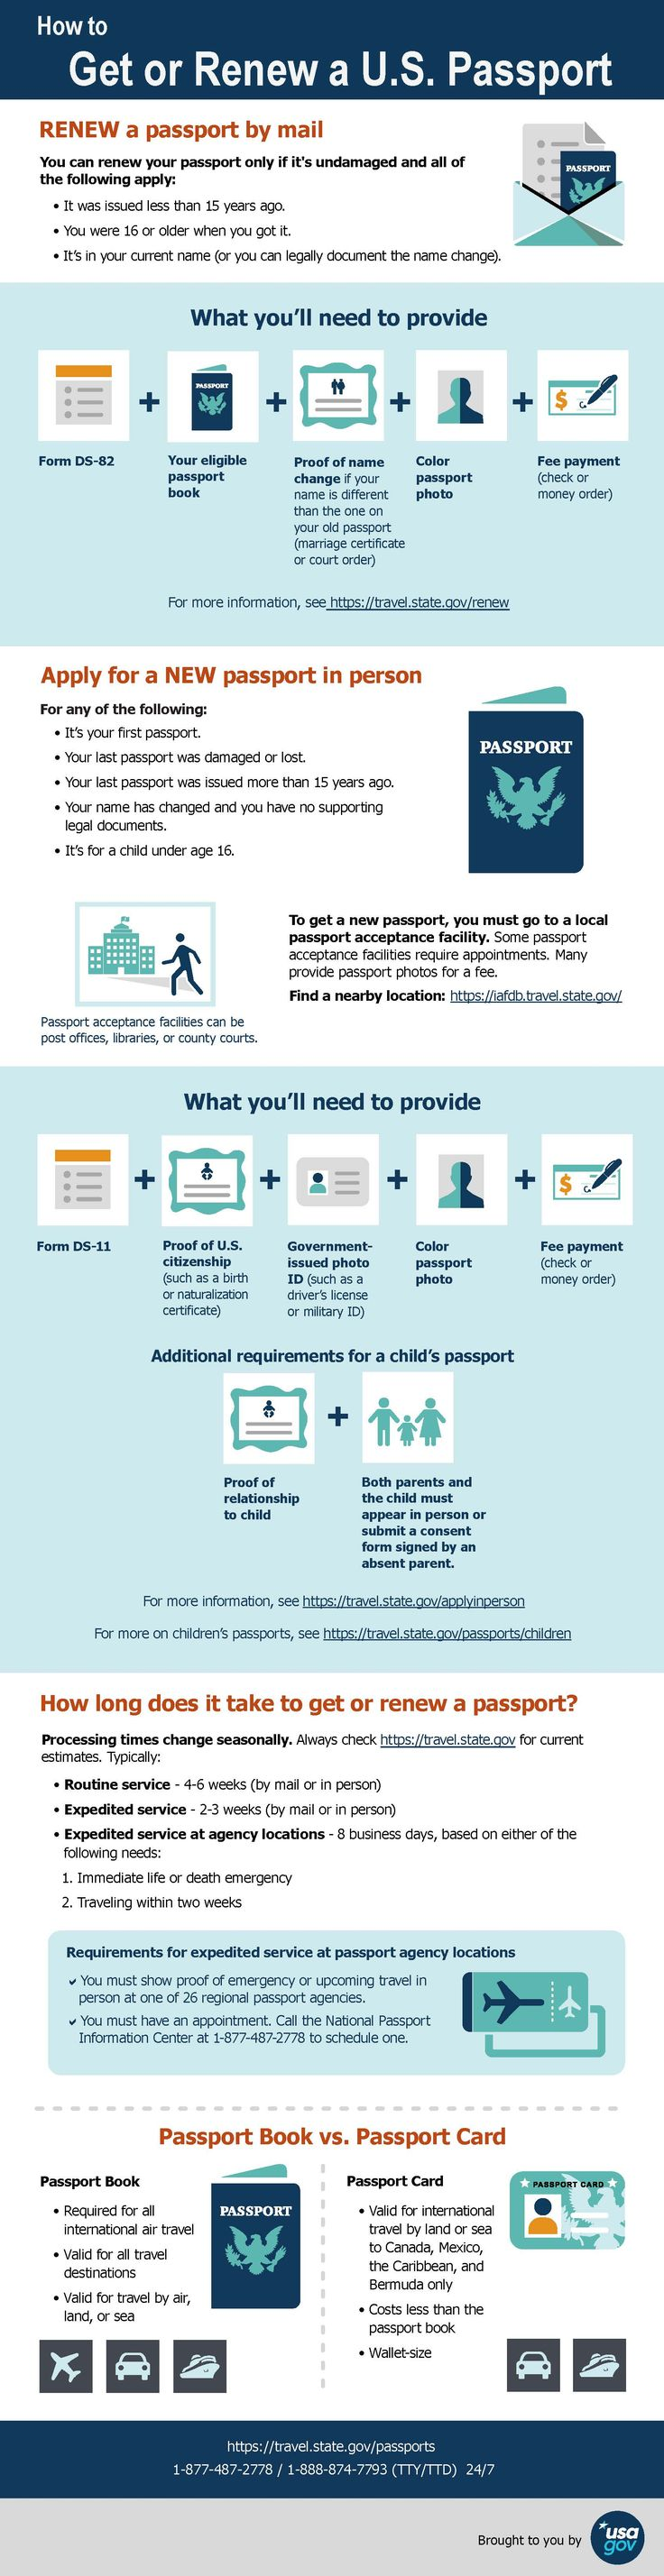 Infographic showing the steps to renew or apply for a U.S. passport.